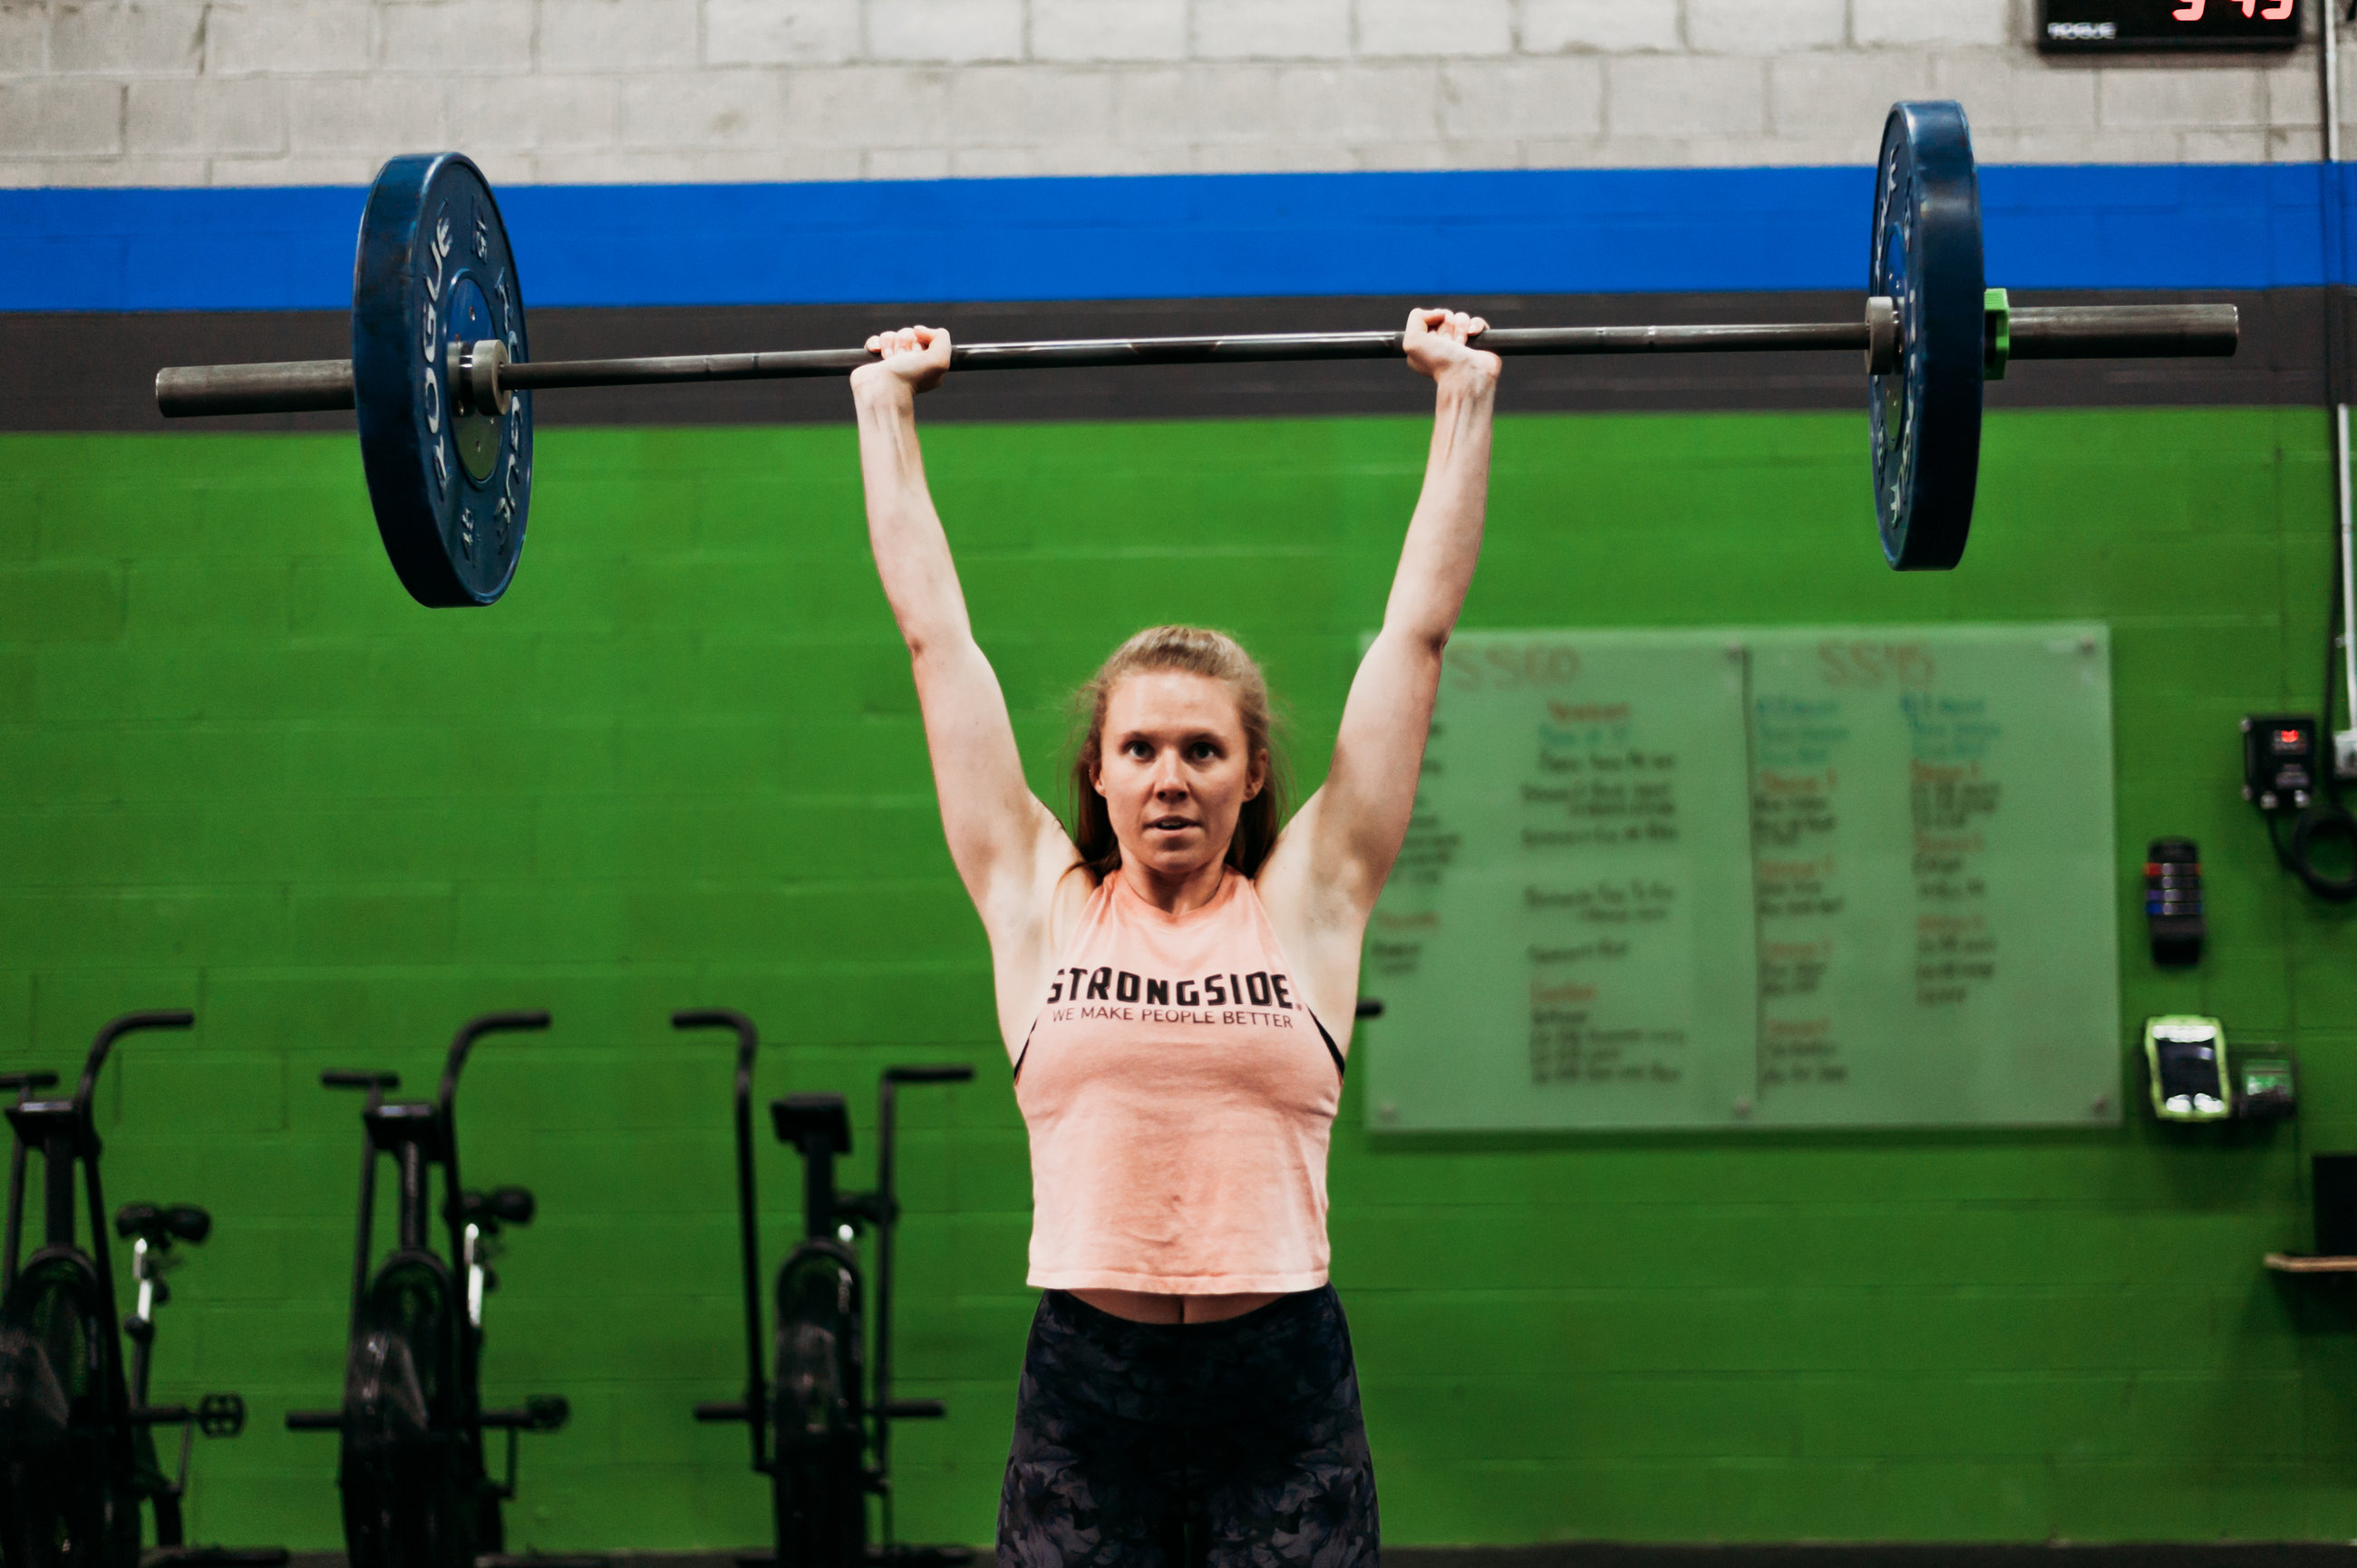 STRONGSIDE BARBELL: 5.25 – 6.1